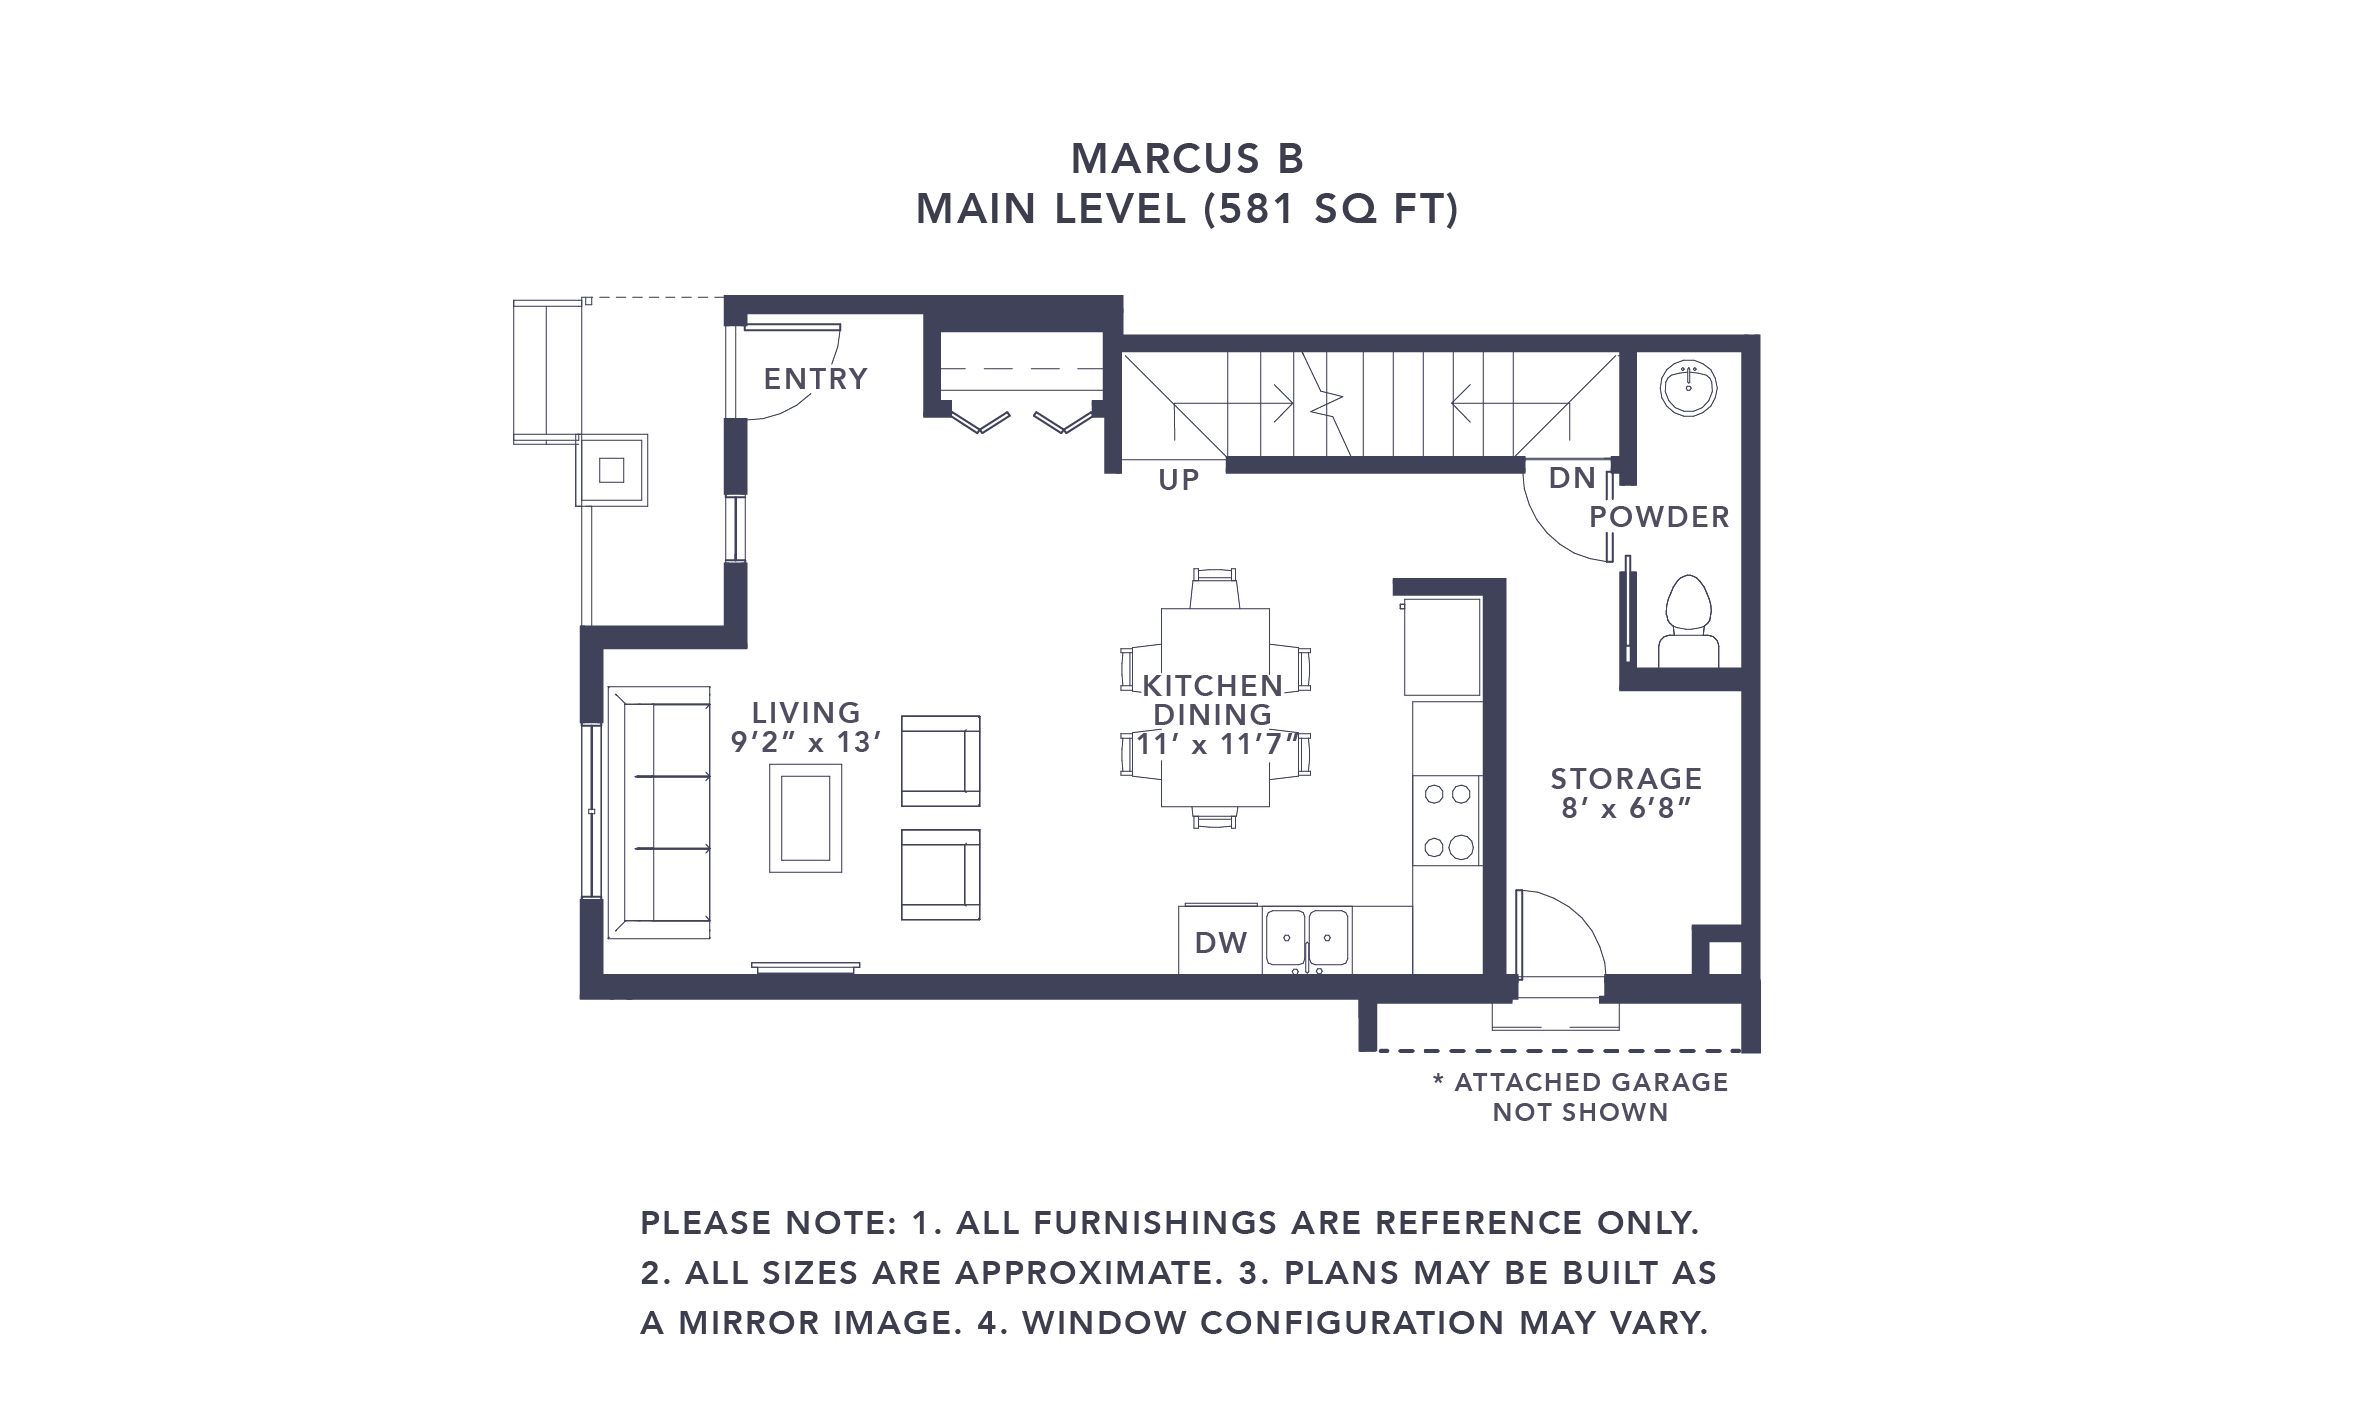 Airdrie Townhome Floorplan Marcus B